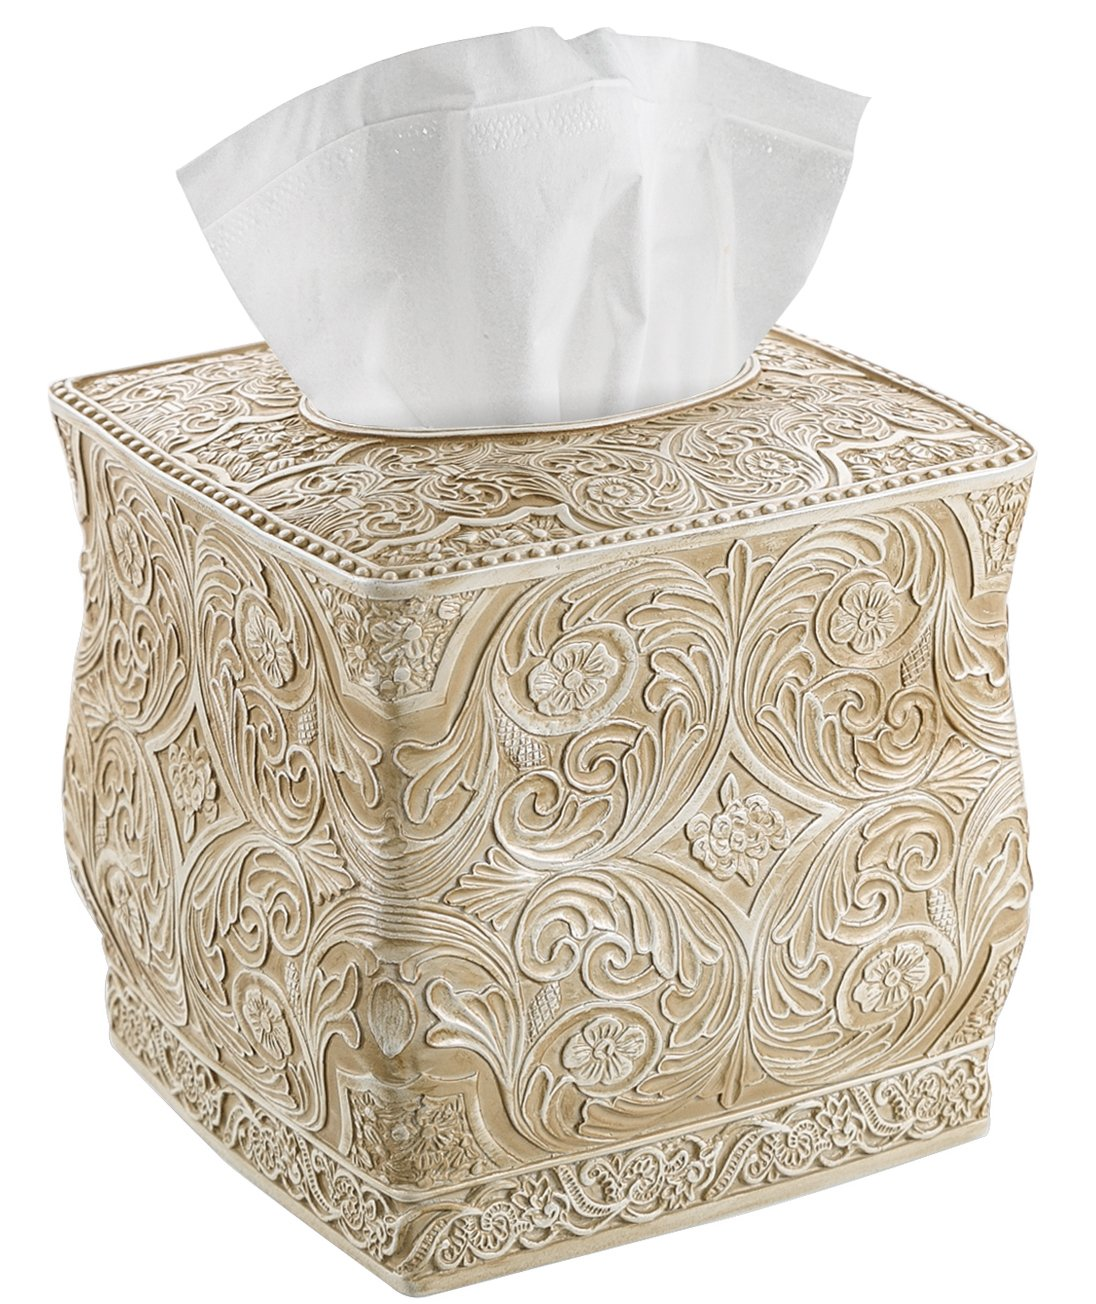 Creative Scents Square Tissue Box Cover - Decorative Bathroom Tissue Holder is Finished in Beautiful Victoria Collection for Cute Elegant Bathroom Decor (Beige)